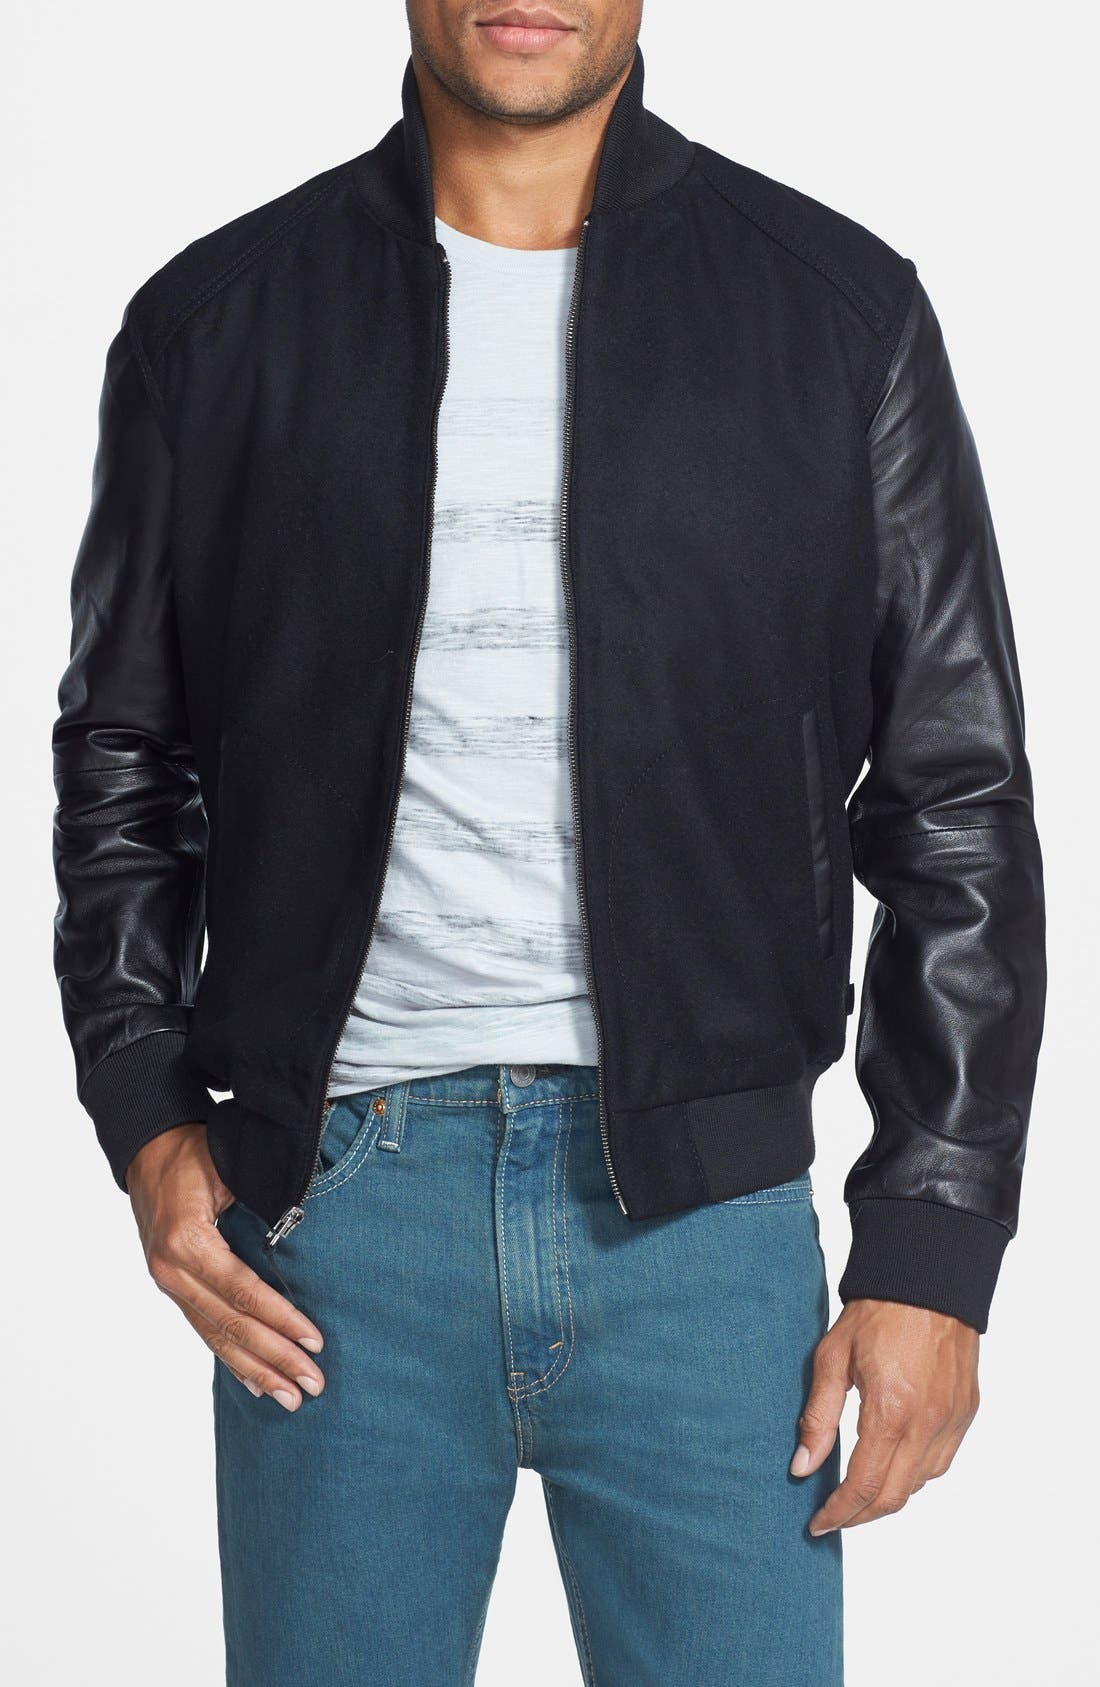 Wool Blend Varsity Jacket with Leather Sleeves,                             Main thumbnail 1, color,                             001